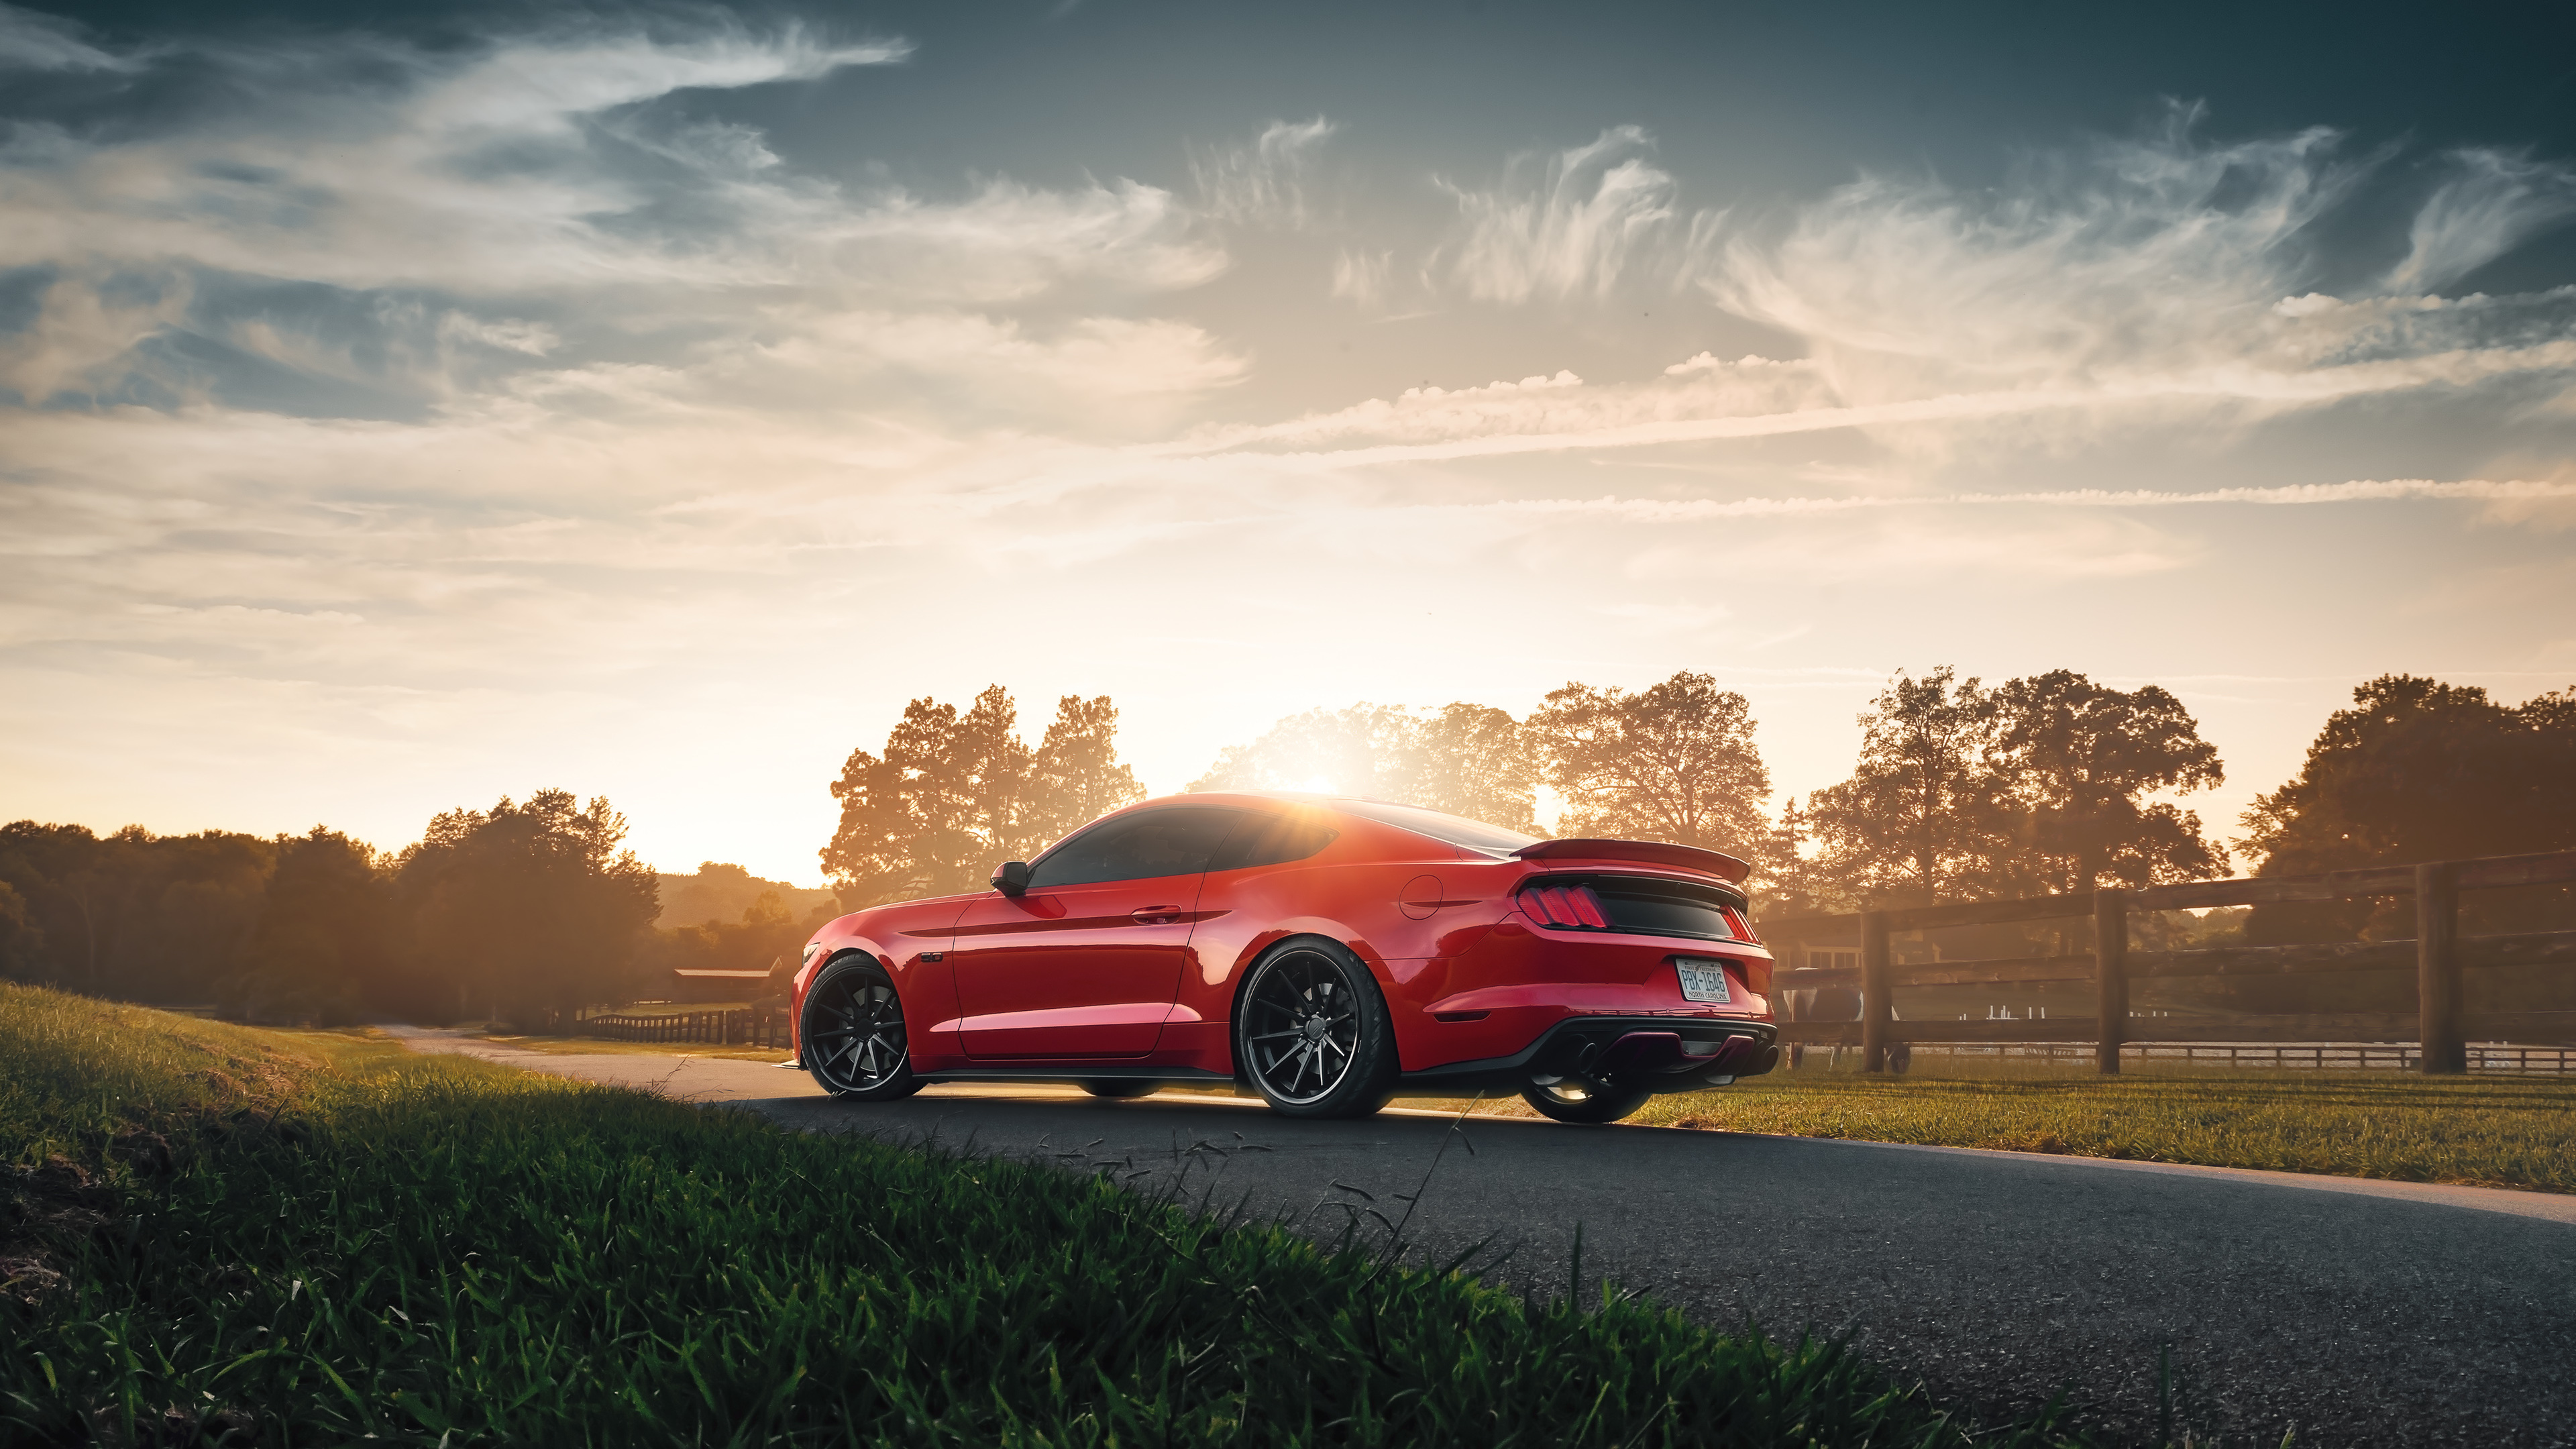 ford mustang gt 2019 4k 1555206864 - Ford Mustang GT 2019 4k - hd-wallpapers, ford wallpapers, ford mustang wallpapers, cars wallpapers, behance wallpapers, 4k-wallpapers, 2019 cars wallpapers